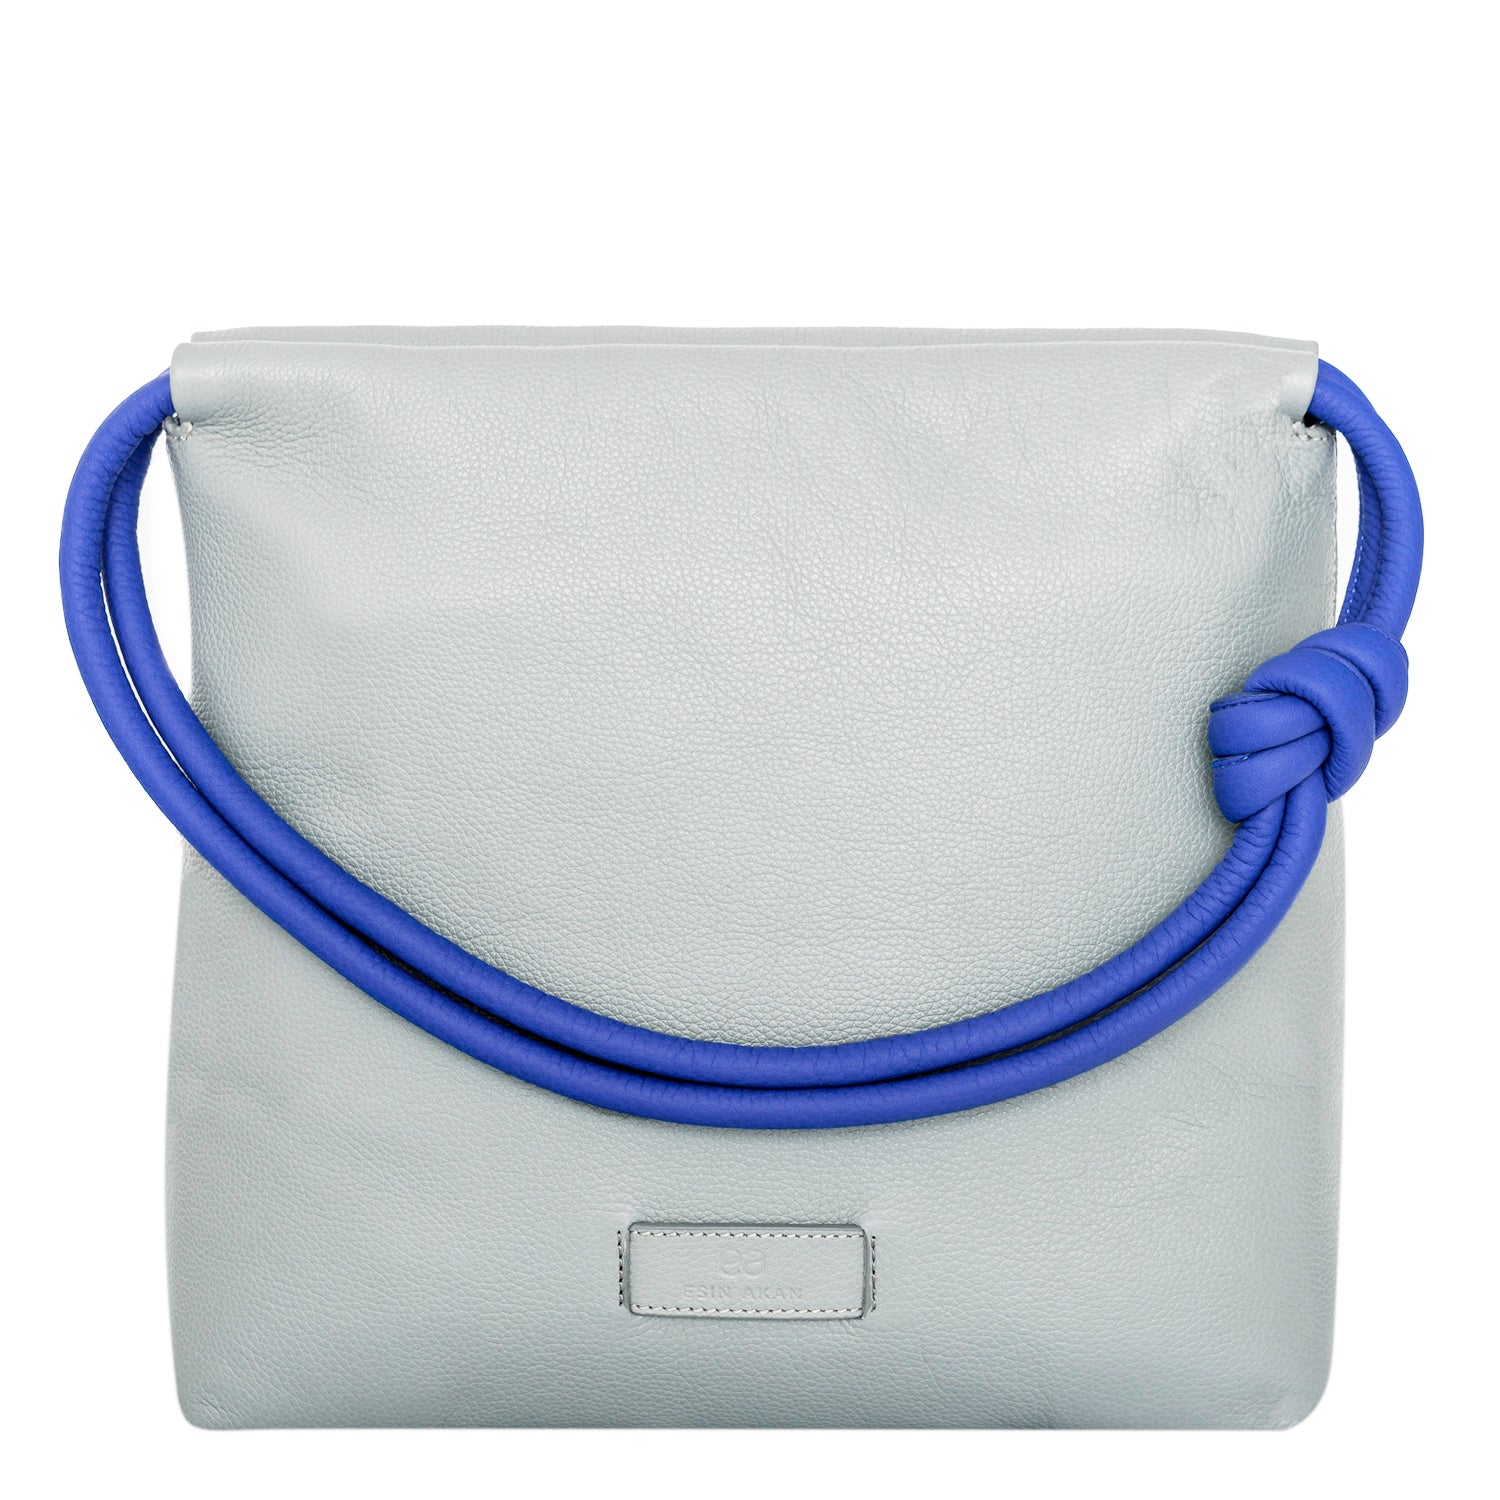 A convertible leather blue and grey shoulder bag for women with a knot detail on the strap that could be used as a clutch bag with its roll down feature, front image.